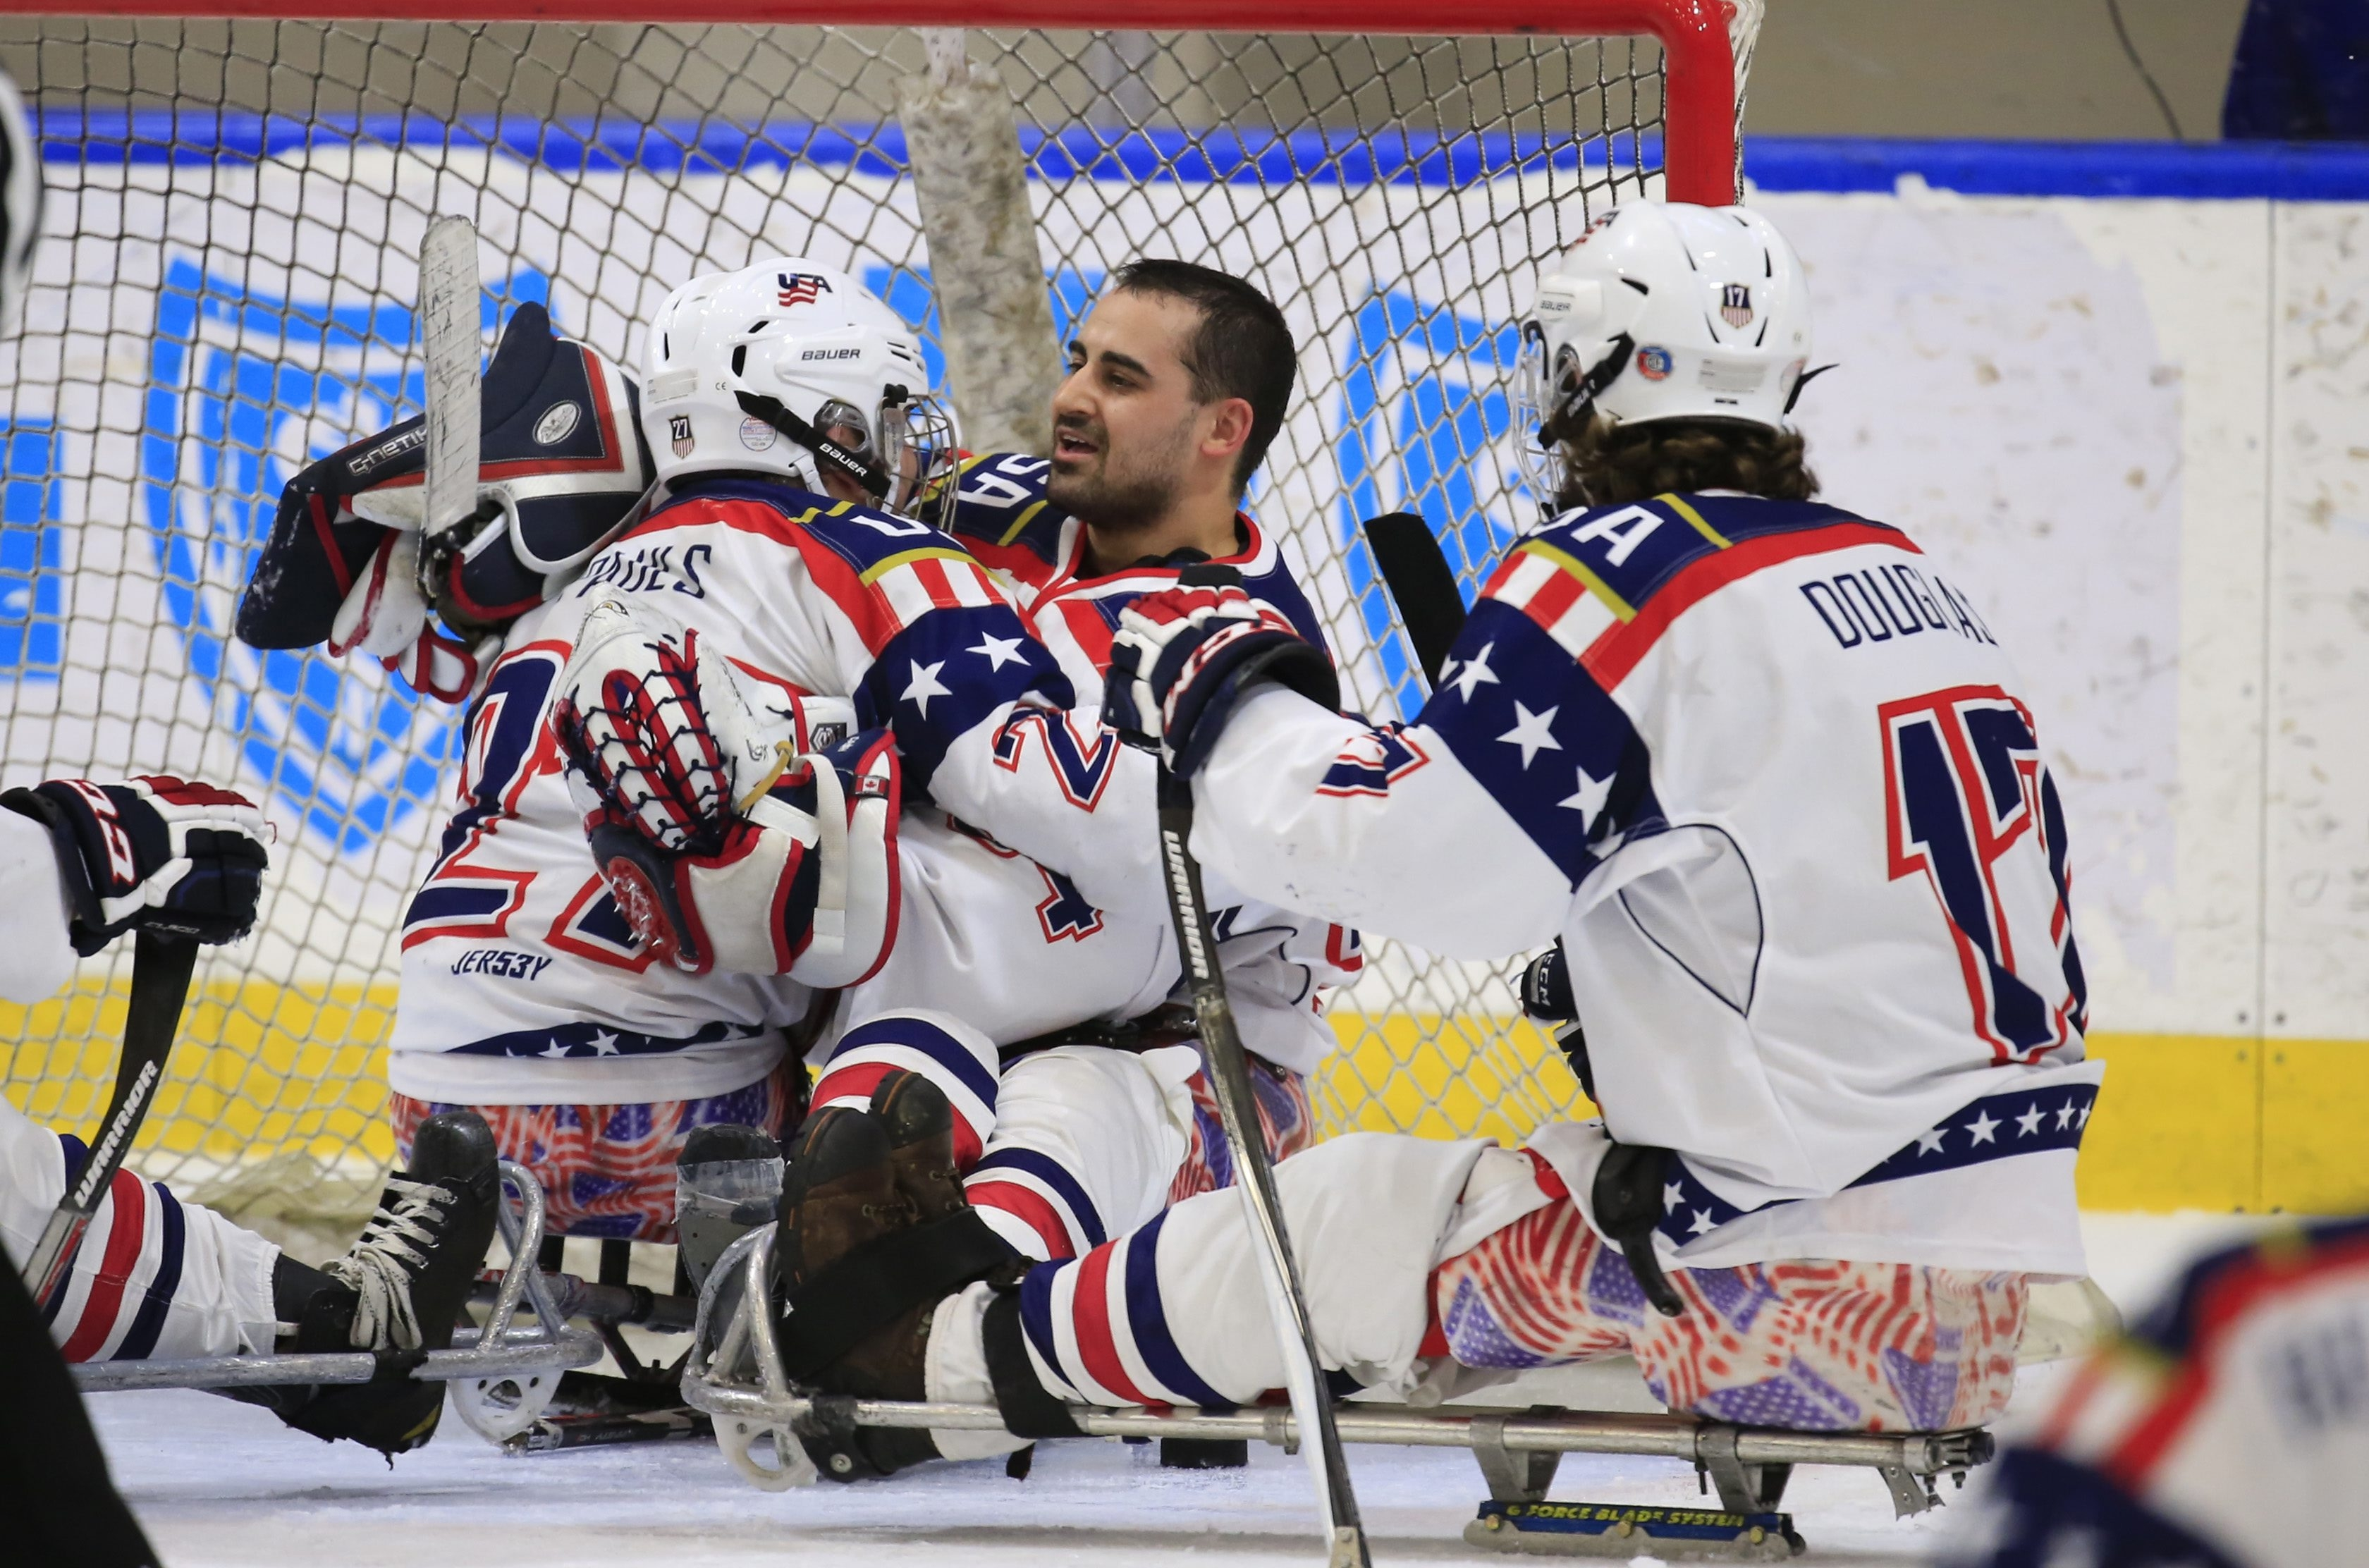 USA celebrates a 4-1 victory over Canada in the Gold Medal Pan Pacific Sled Hockey Championship game at HarborCenter.